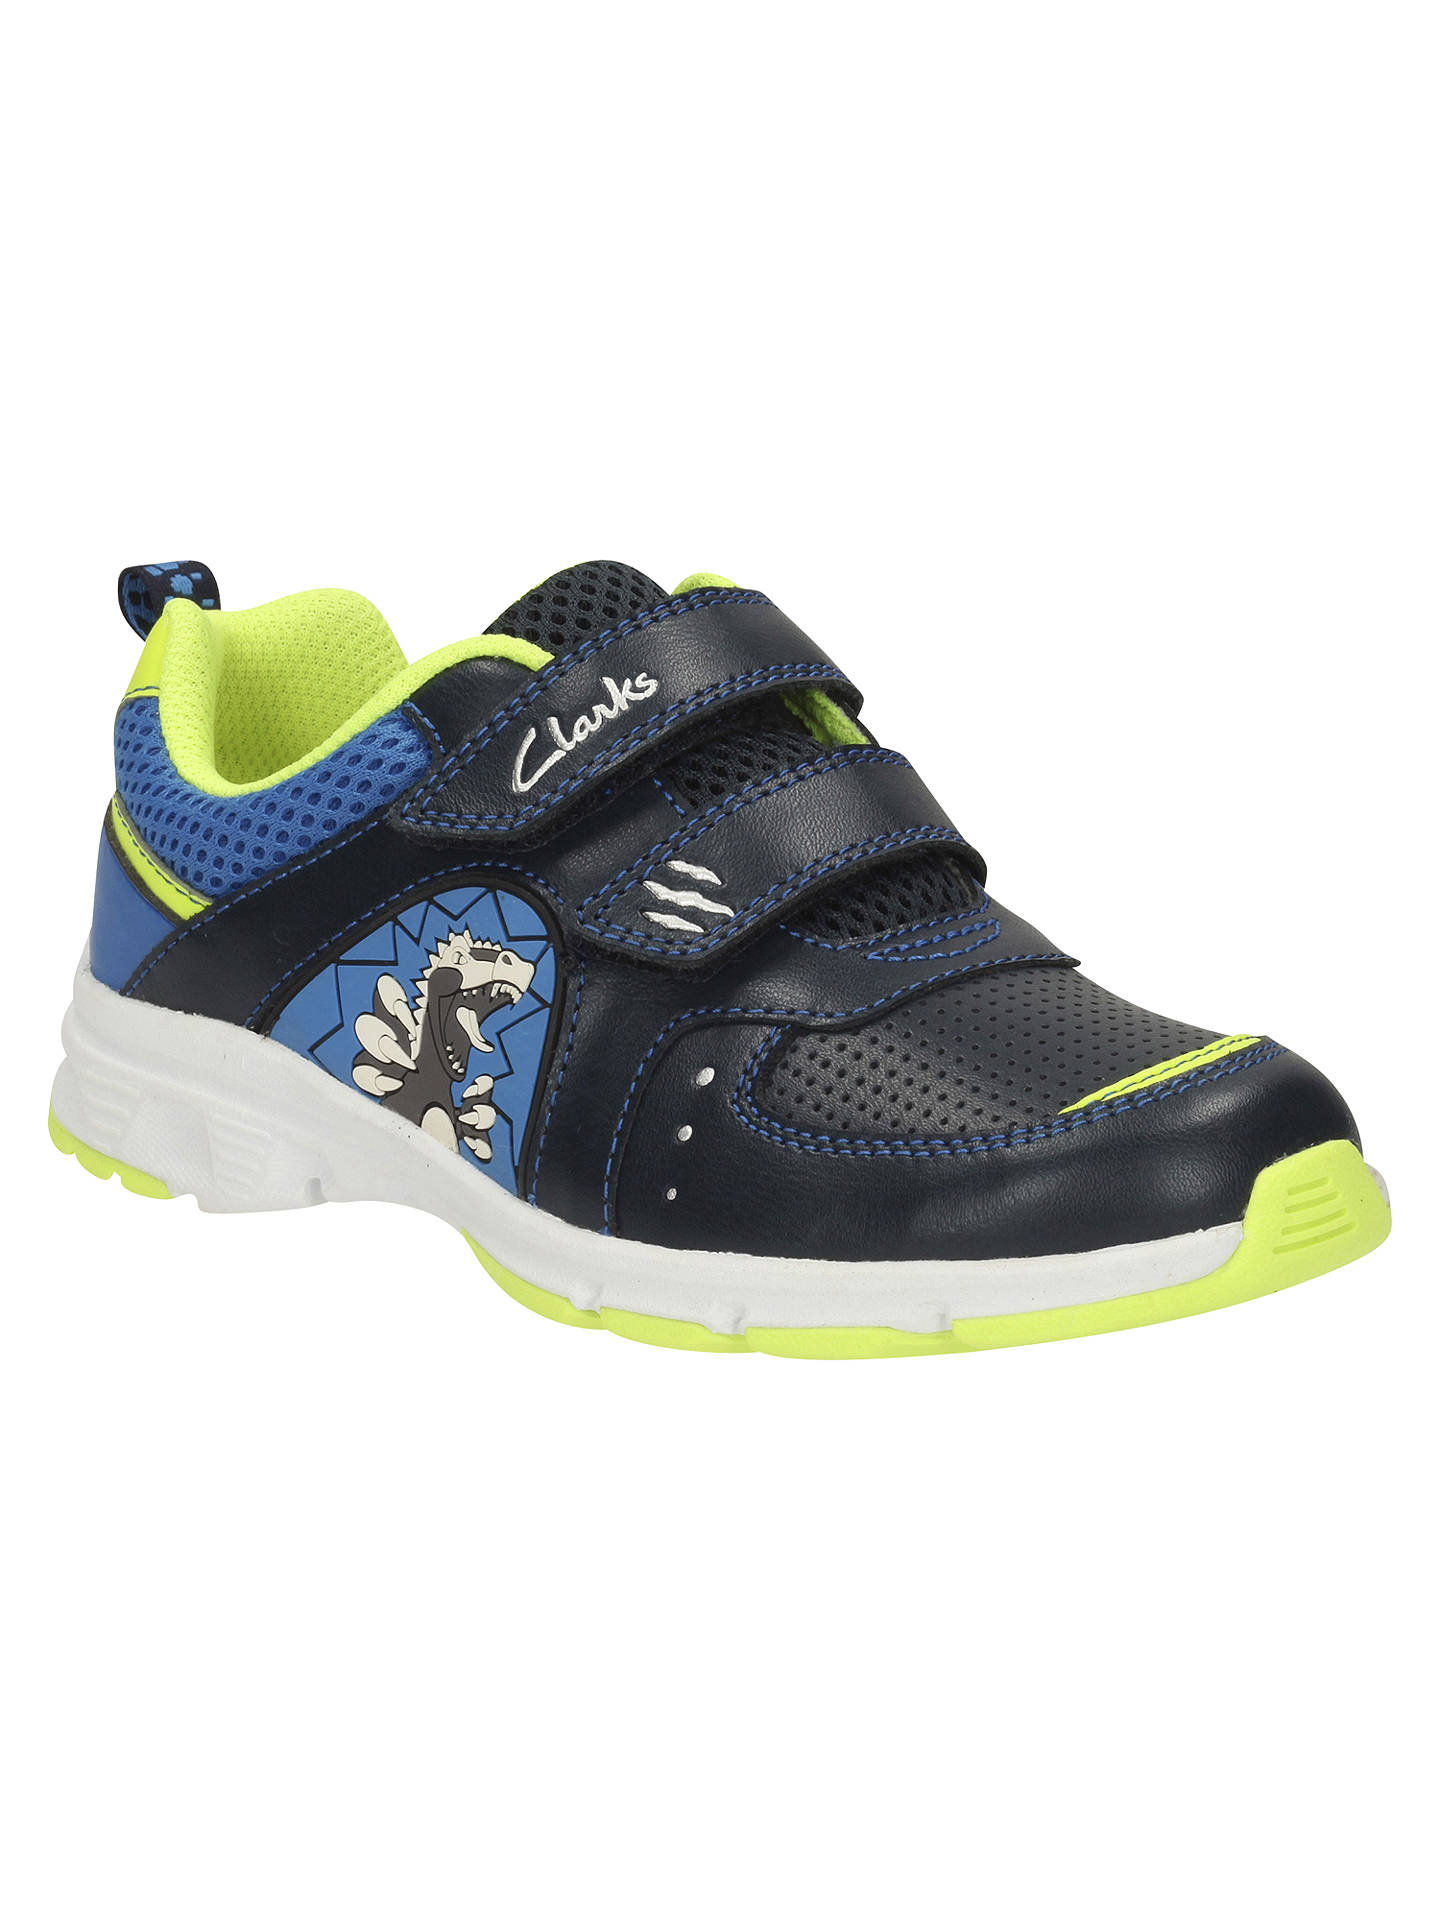 puente monitor Pickering  Clarks Children's Pass Roar Sports Shoes, Navy at John Lewis & Partners